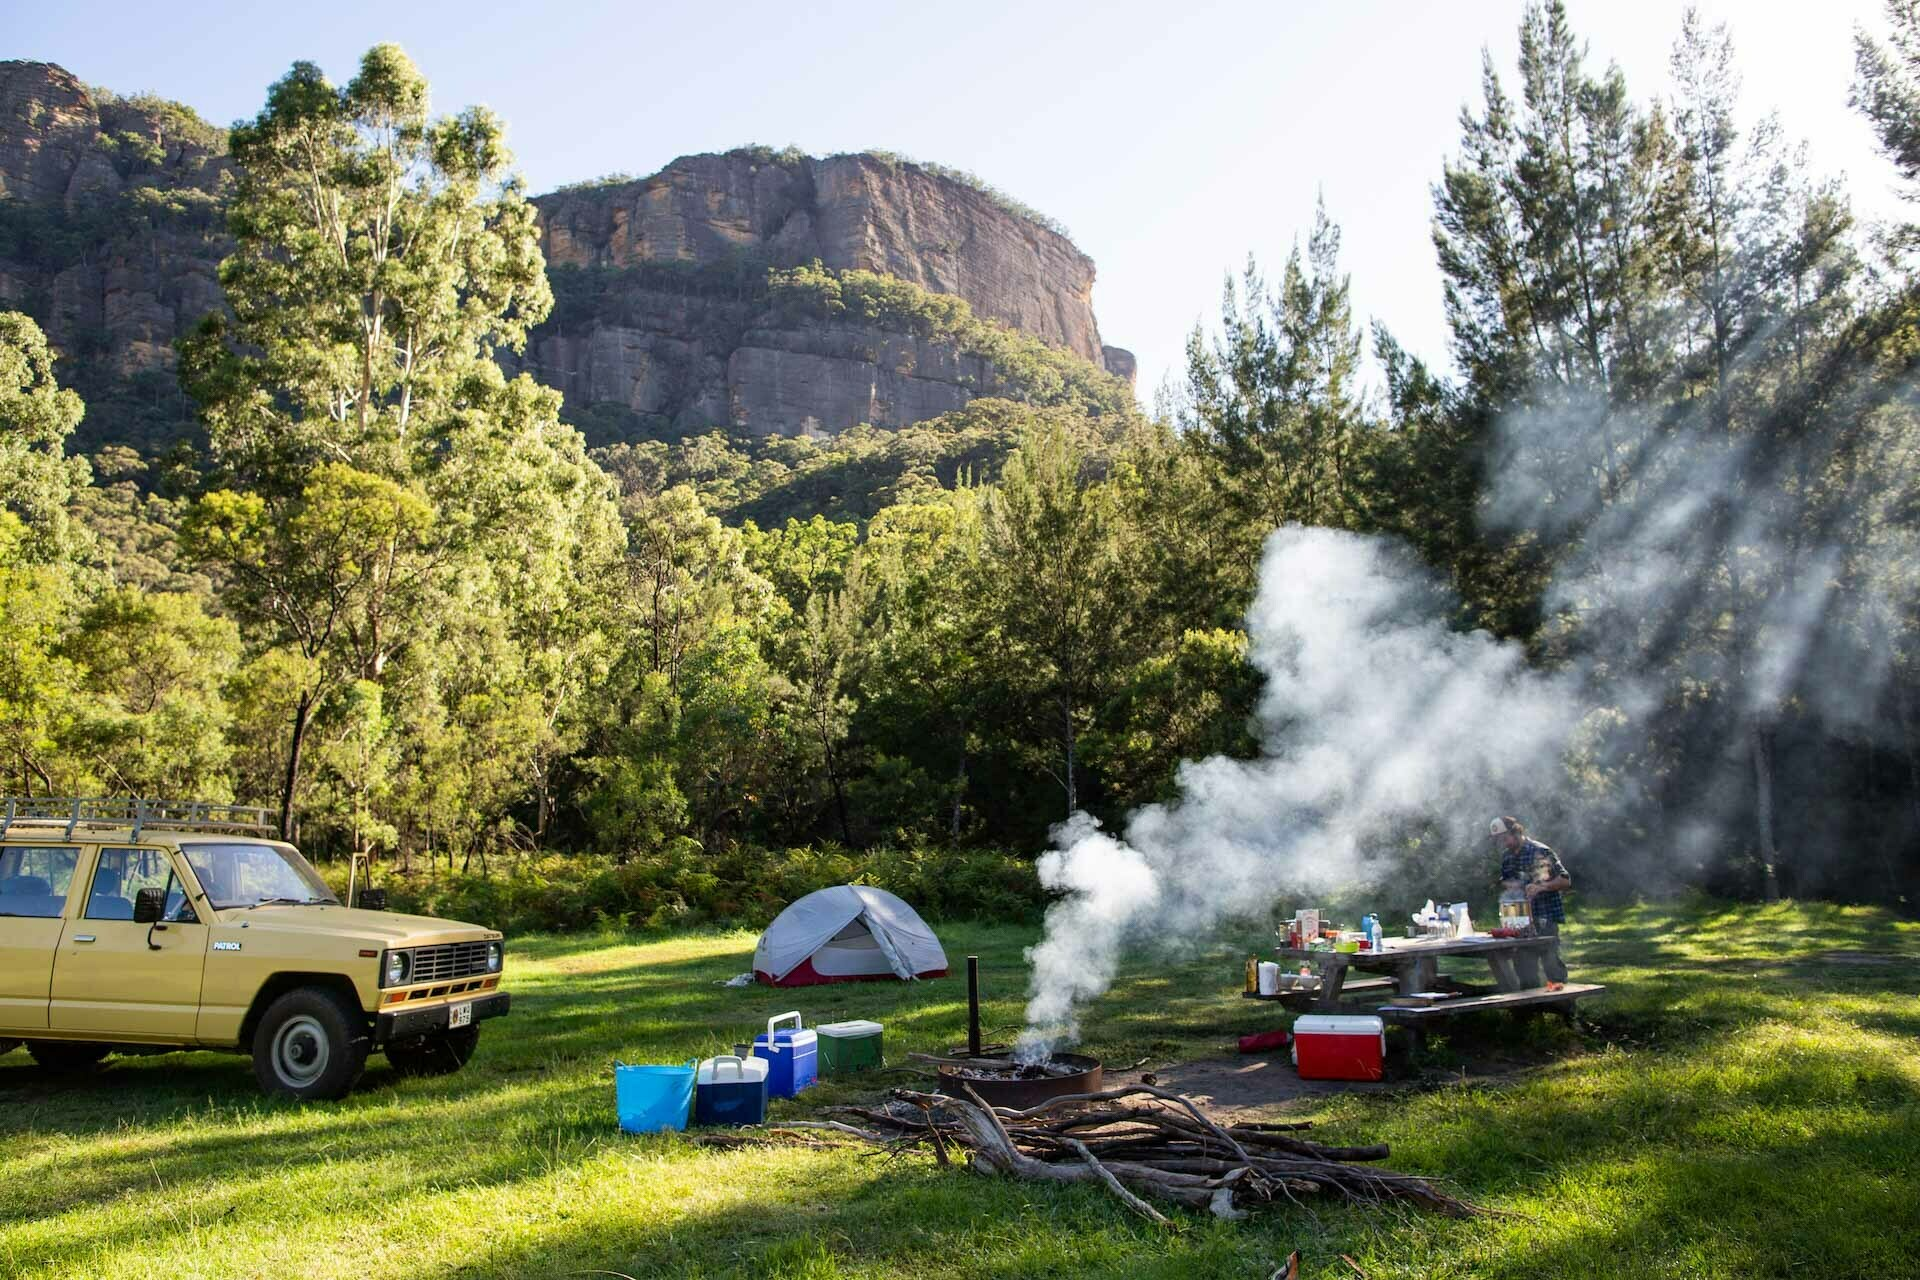 Canyoning In Search Of A Good Beer Harriet Farkash, Osprey Adventure Grant, campsite, blue mountains, car,